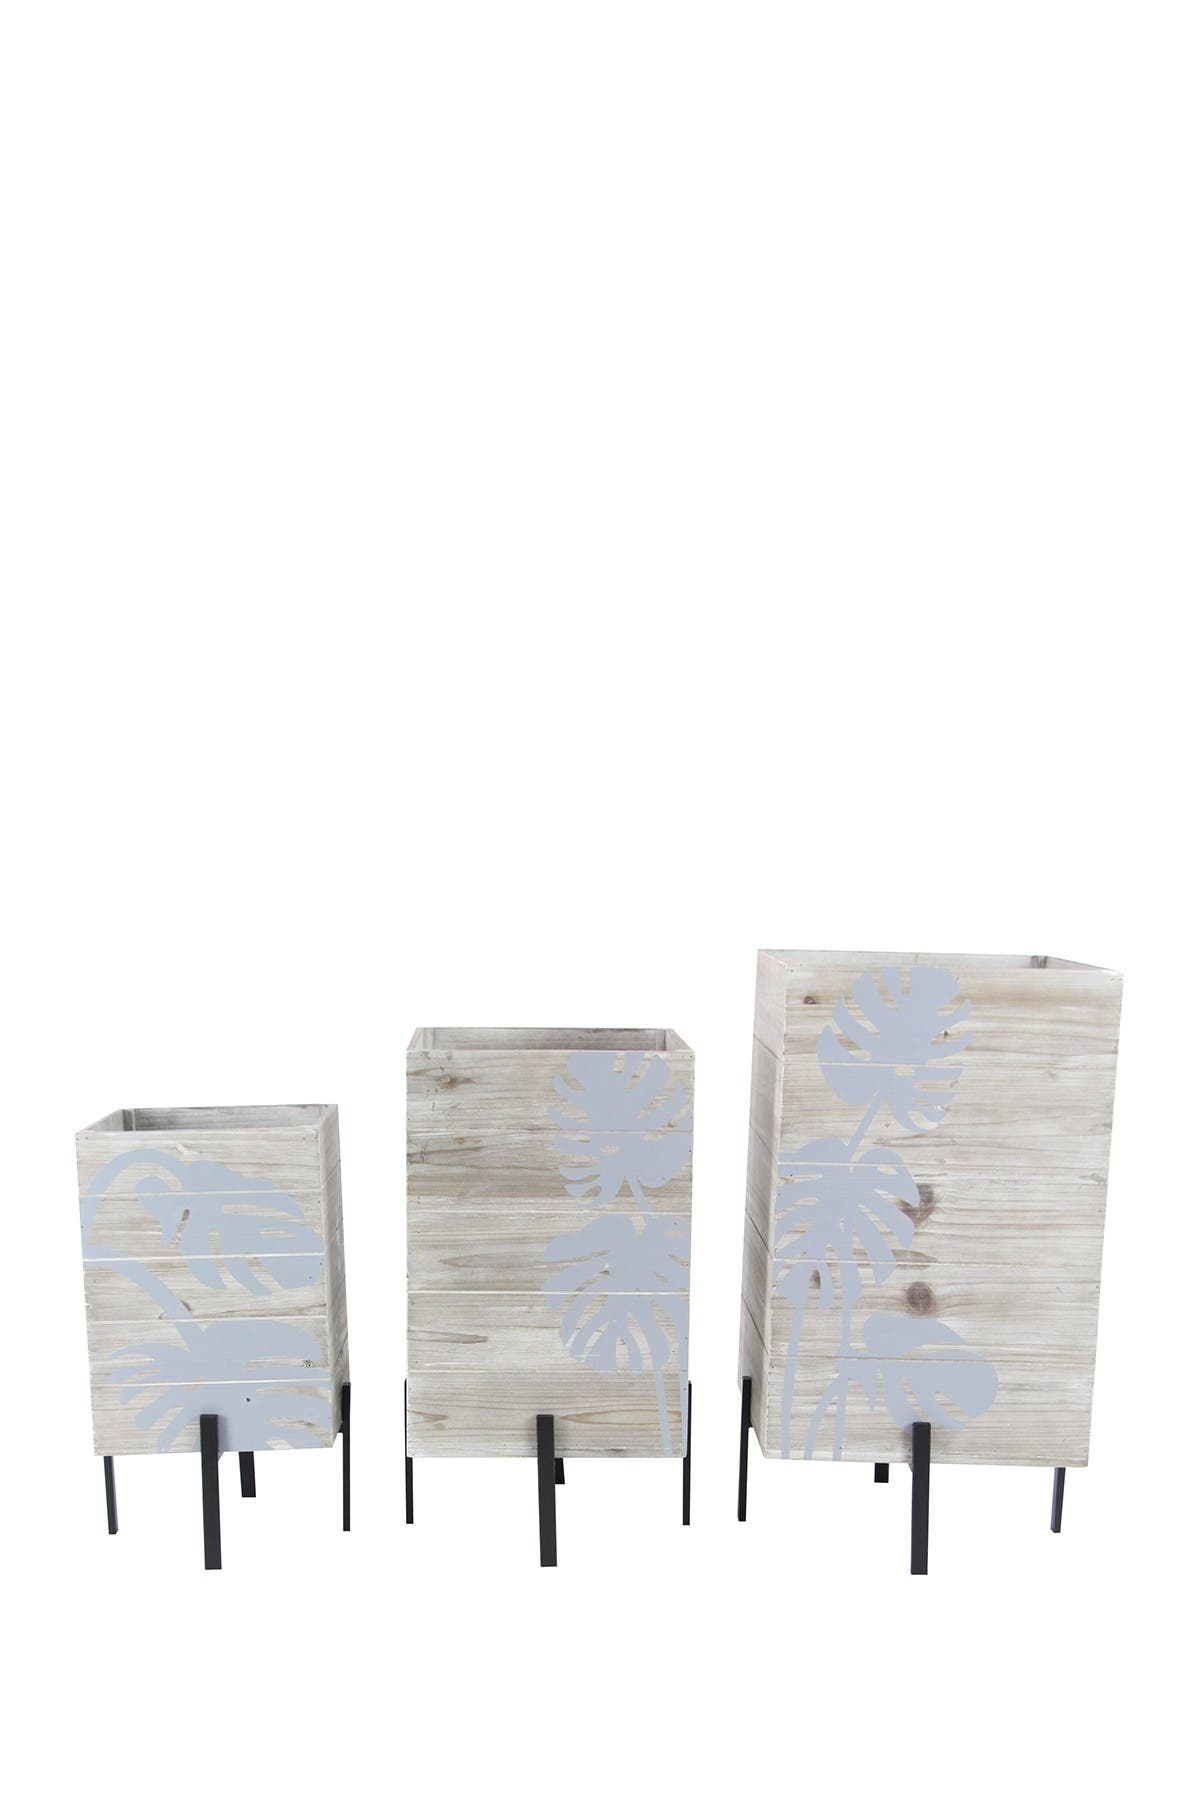 Image of Willow Row Brown Wood Rustic Rectangular Standing Planter - Set of 3